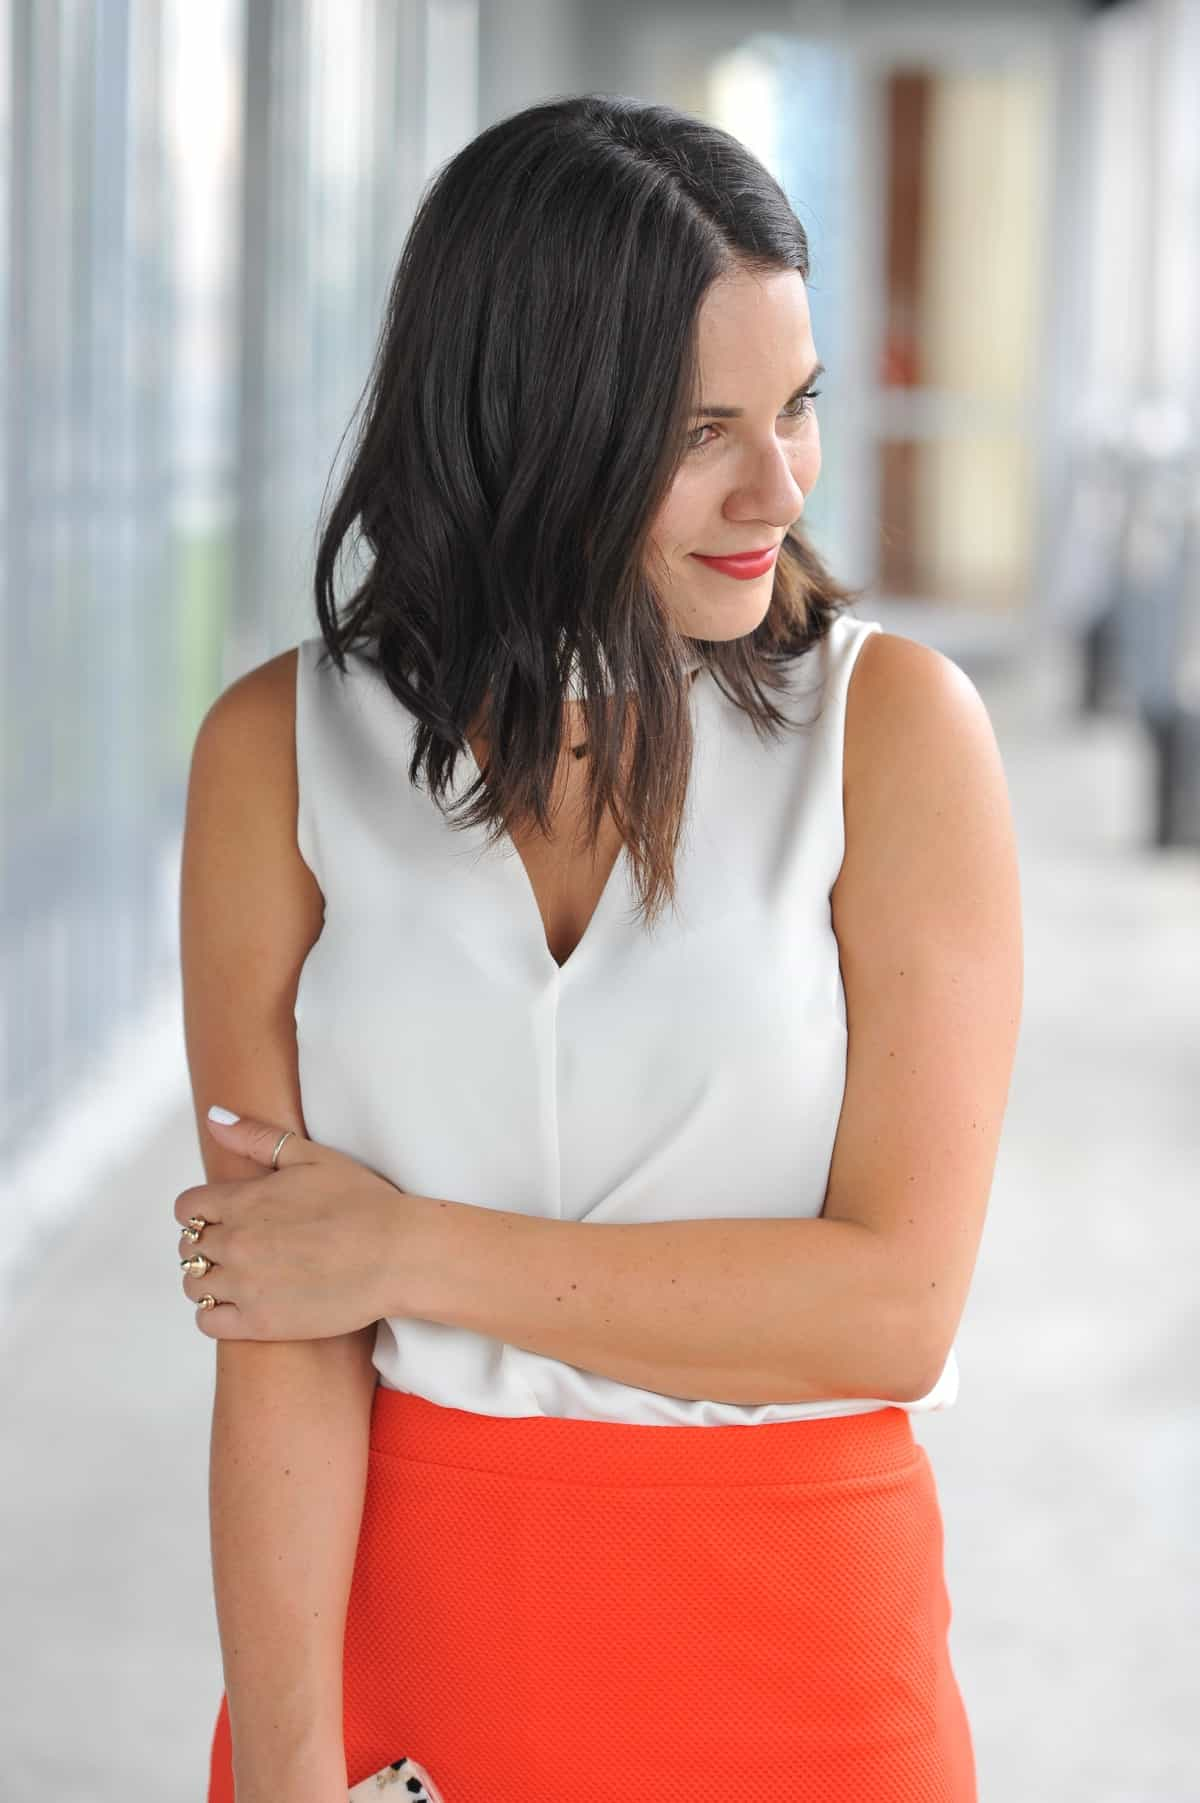 ASOS peplum hem mini skirt- date night outfit ideas - My Style Vita @mystylevita